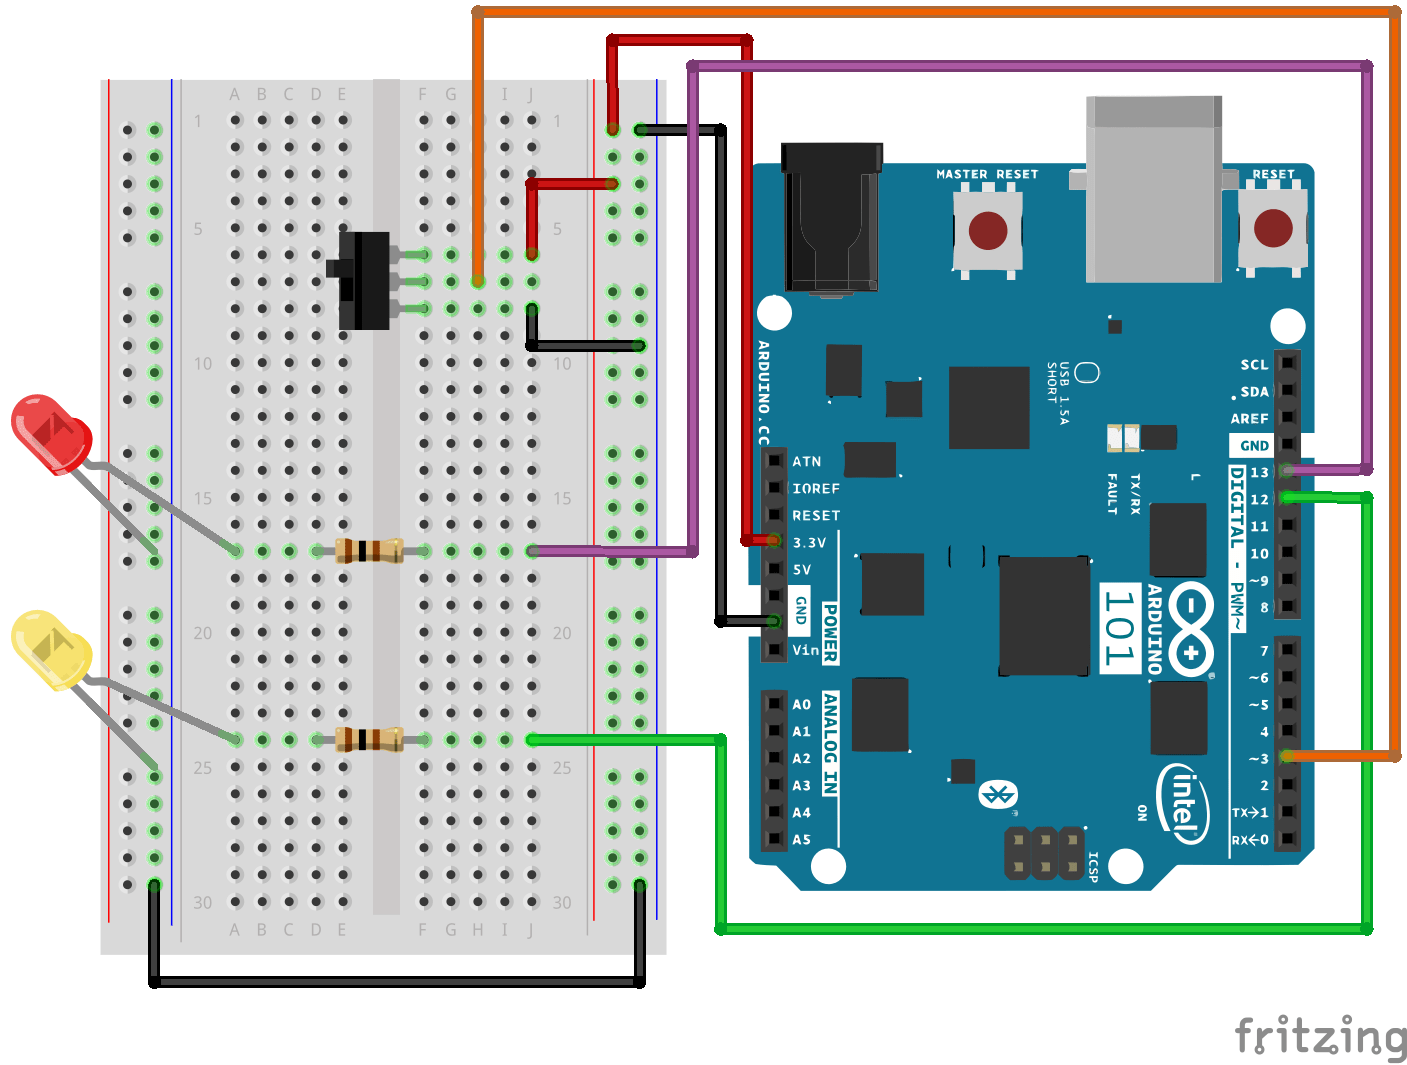 hight resolution of wiring diagram for the experiment alt text